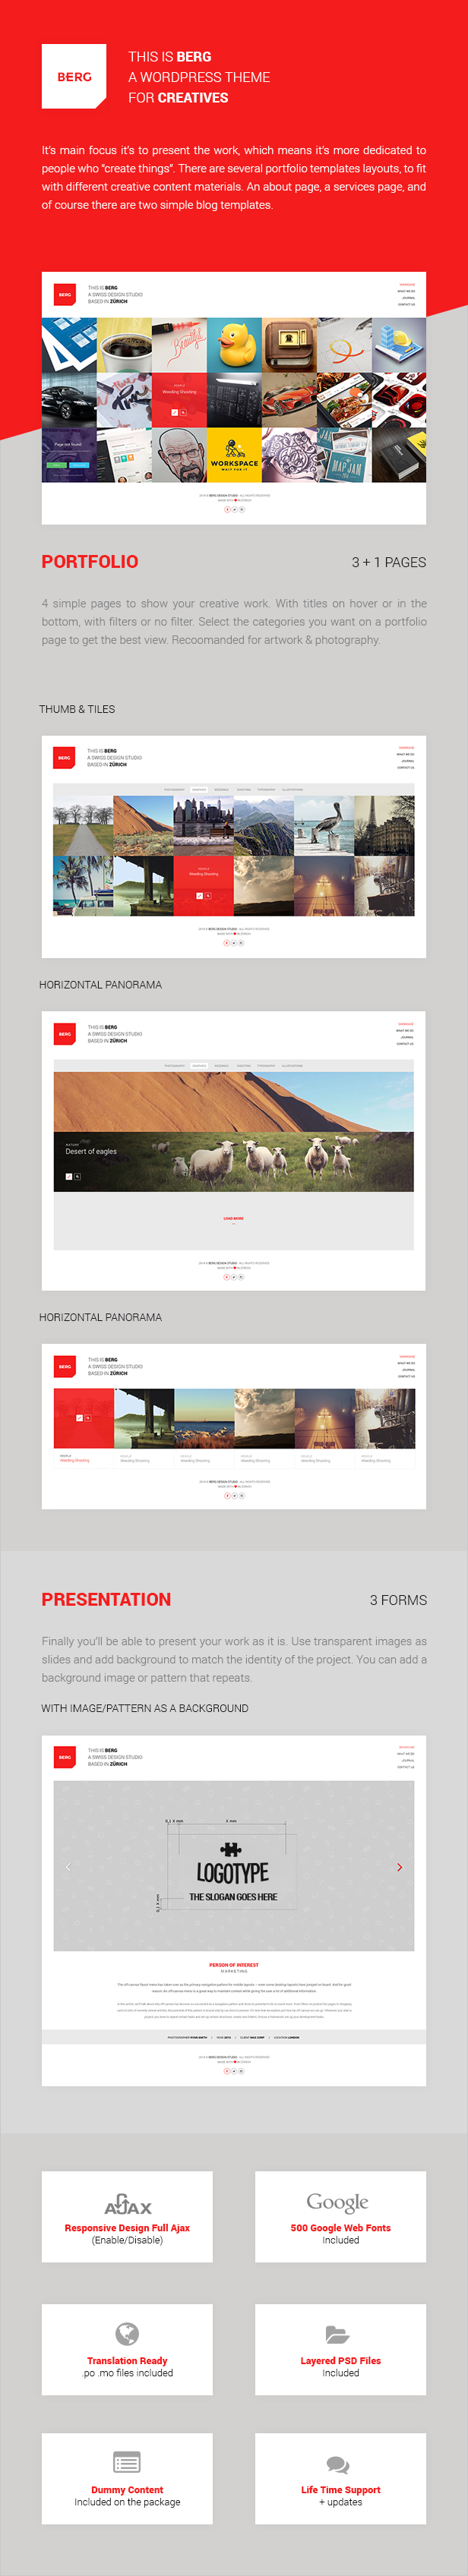 WordPress theme Berg - WordPress Portfolio Theme (Portfolio)